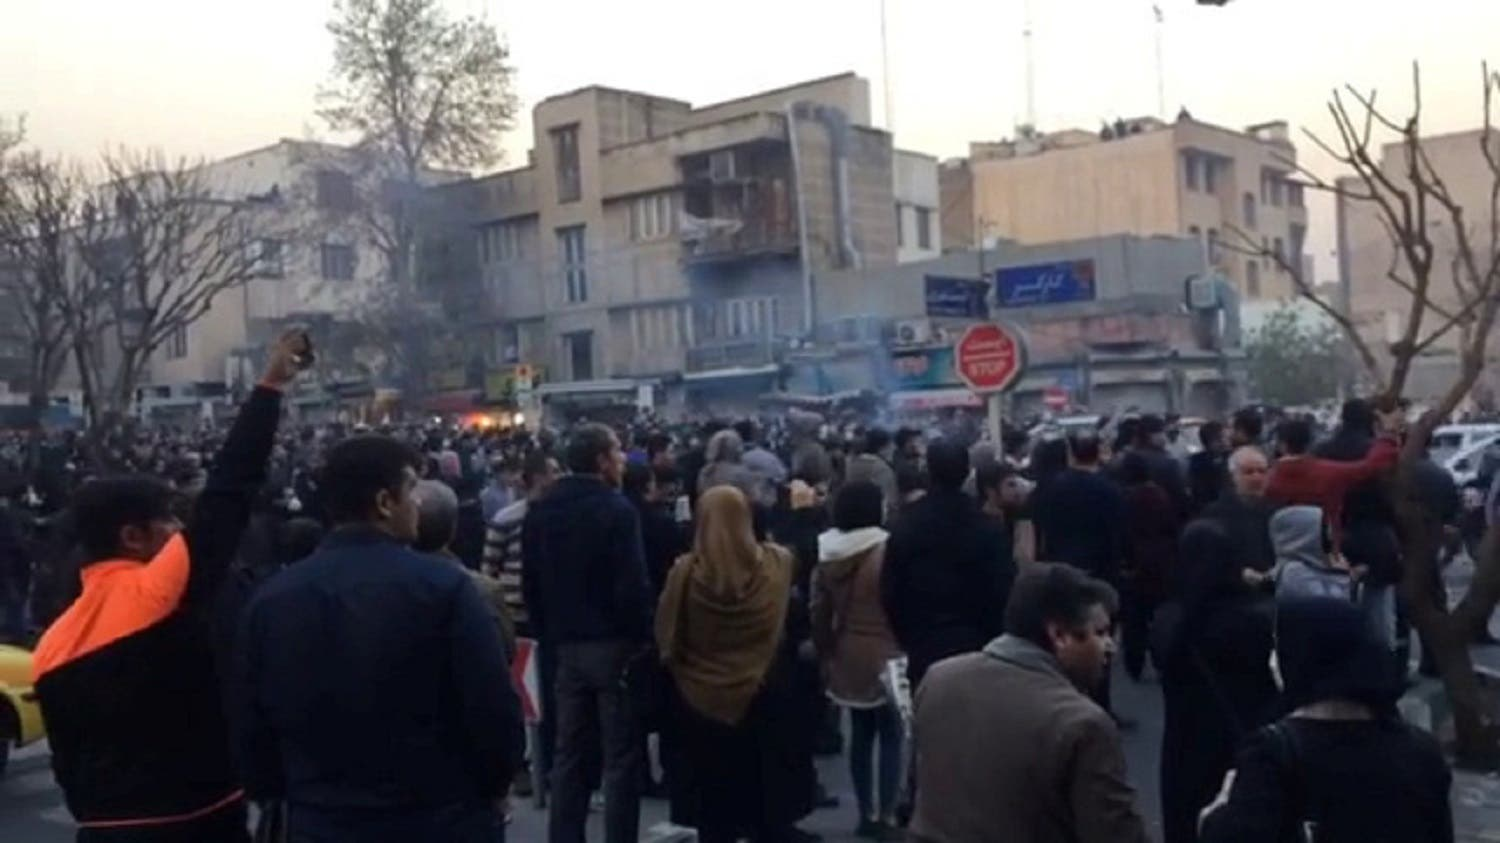 People protest in Tehran, Iran December 30, 2017 in this still image from a video obtained by REUTERS.